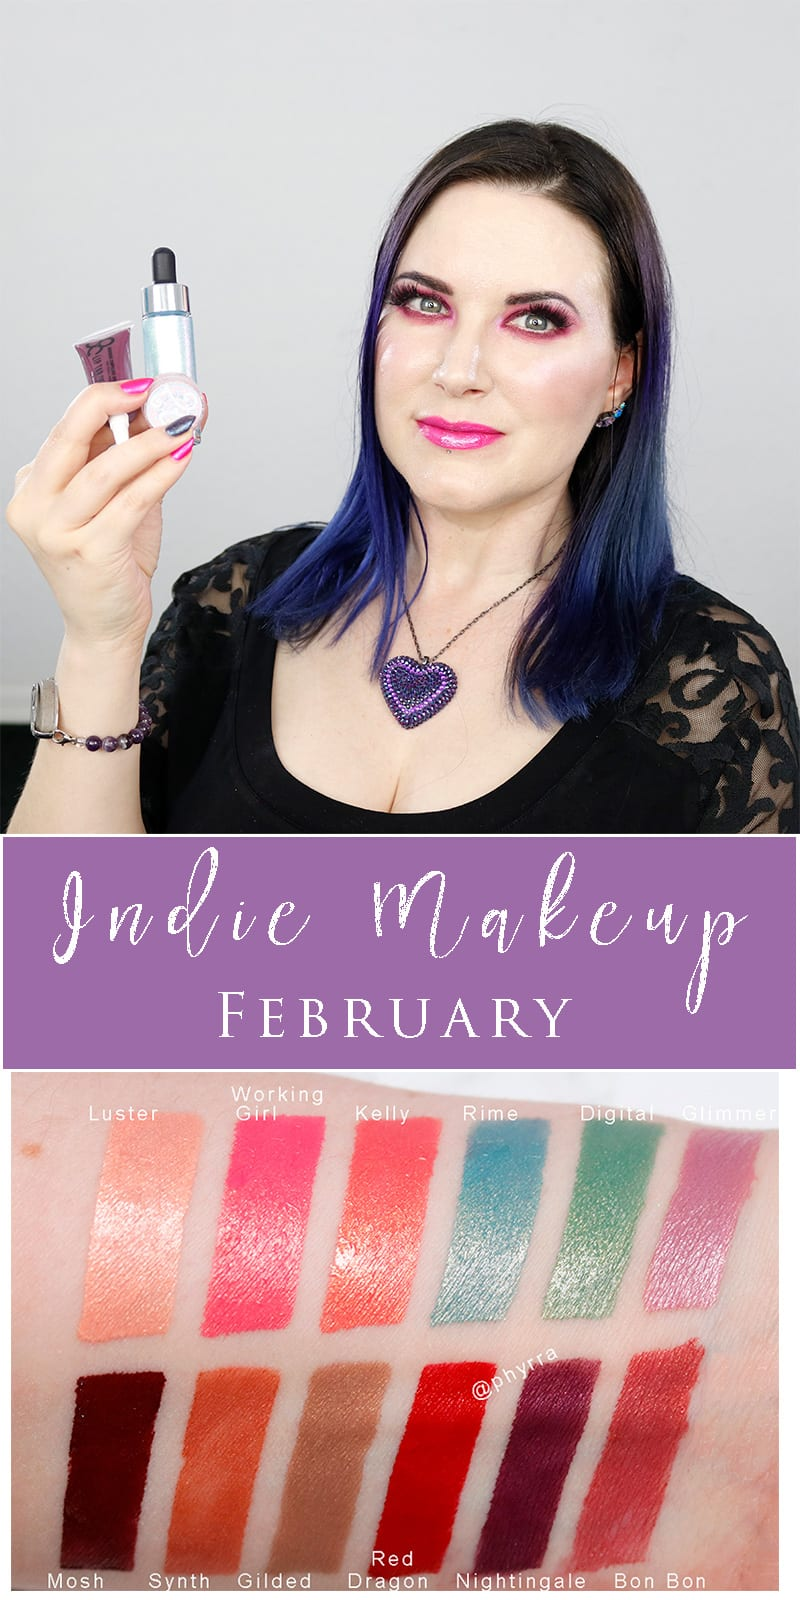 Cruelty-free Indie Makeup for February - Cover FX, OCC Makeup, Silk Naturals, Aromaleigh, My Pretty Zombie, and Clean Slate Cosmetics all make gorgeous vegan indie makeup.